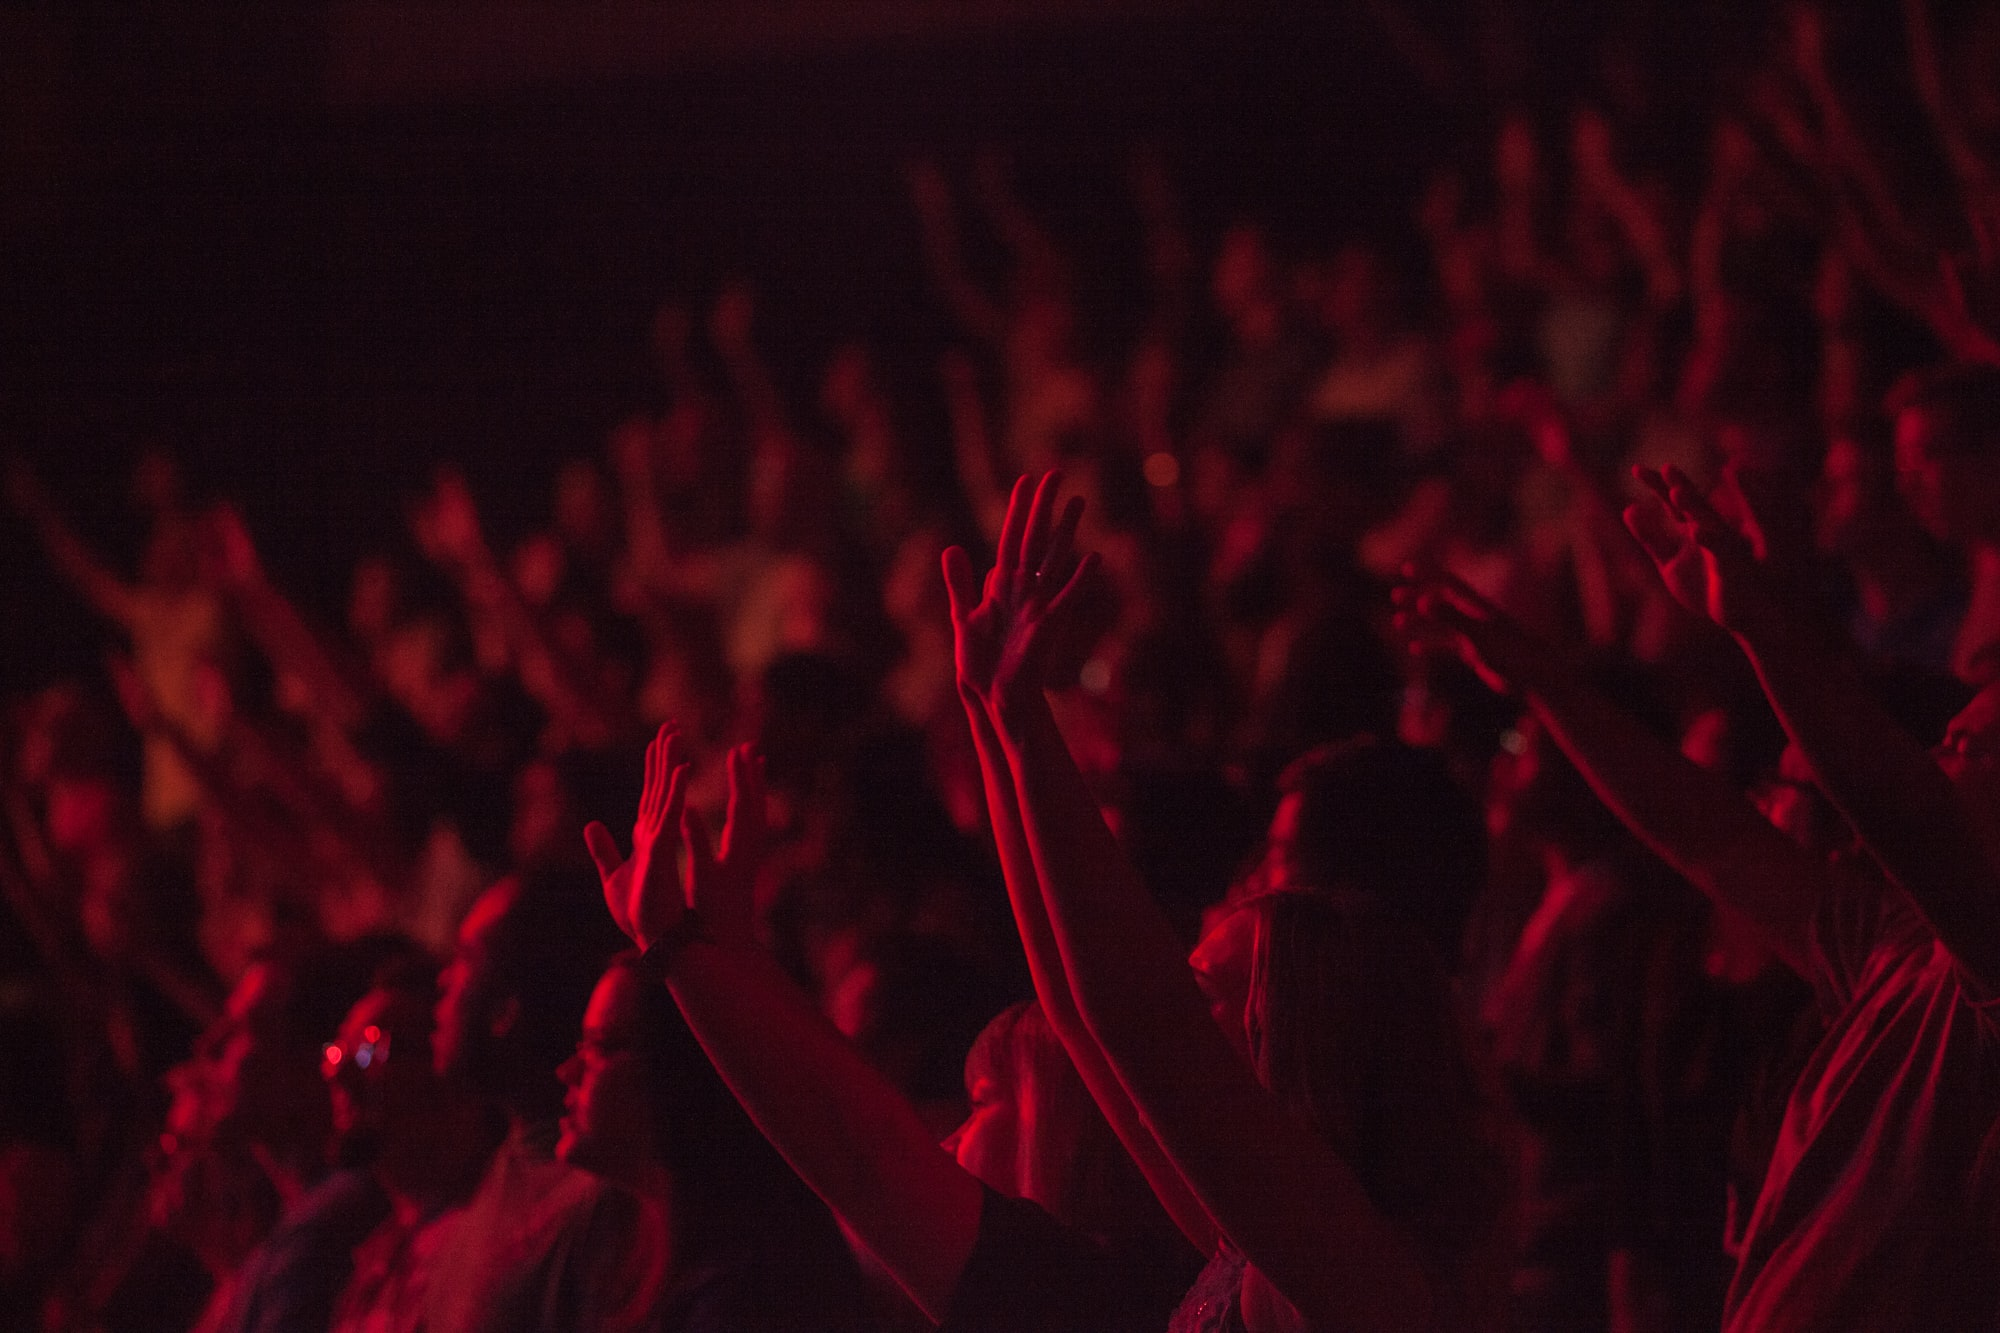 A dim shot of a cheering crowd at a concert